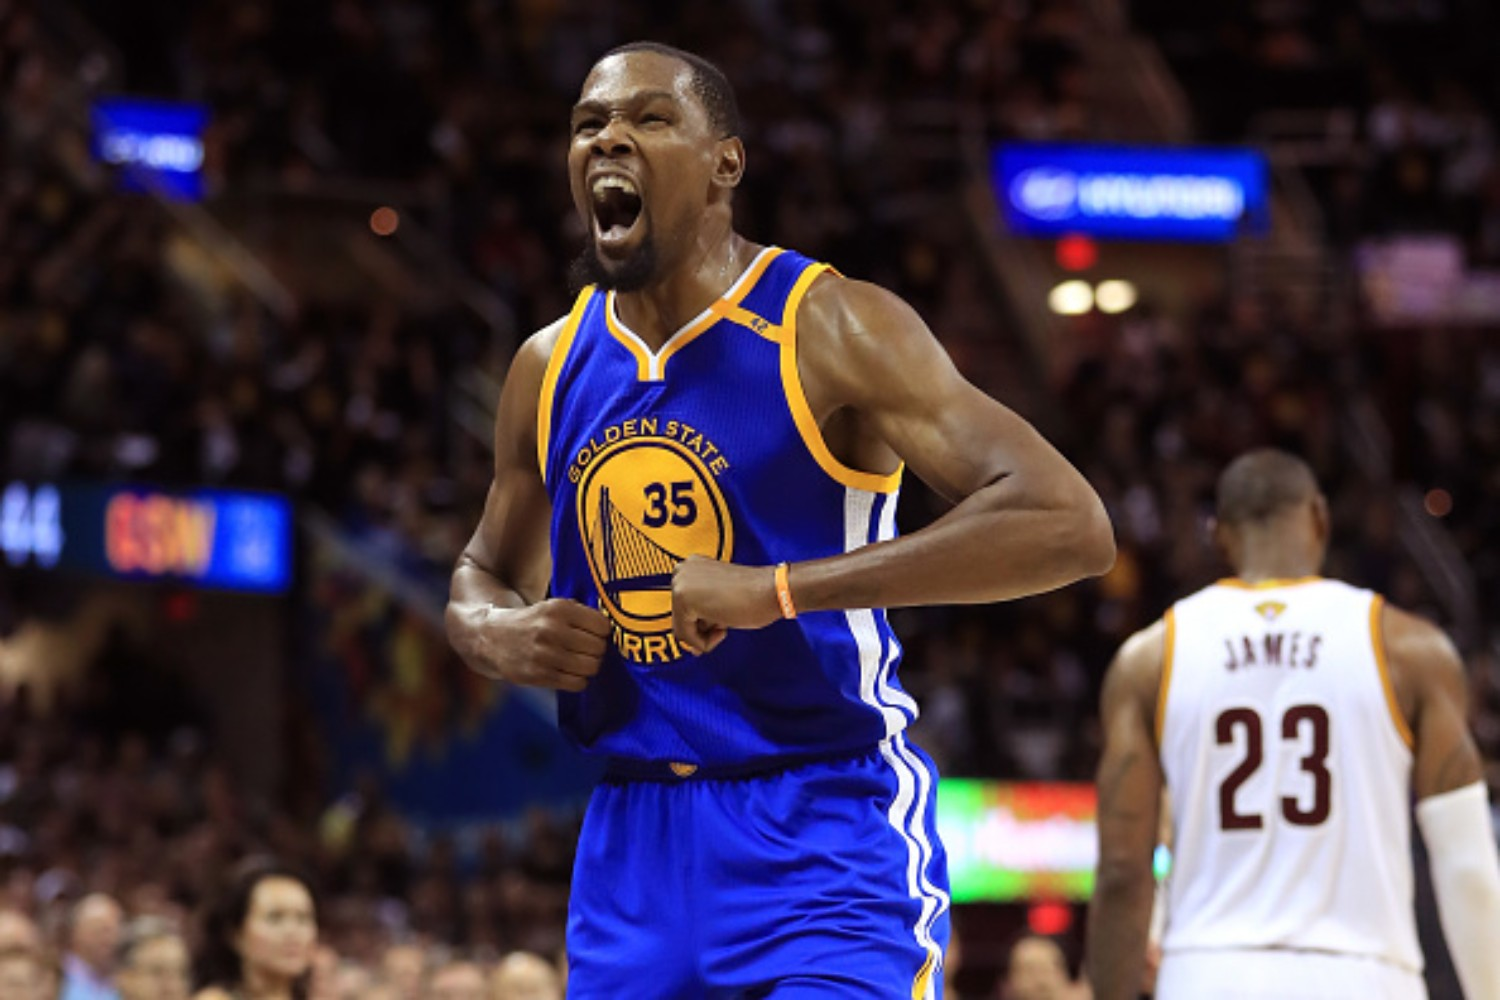 Kevin Durant doesn't think he took the easy route joining the Warriors